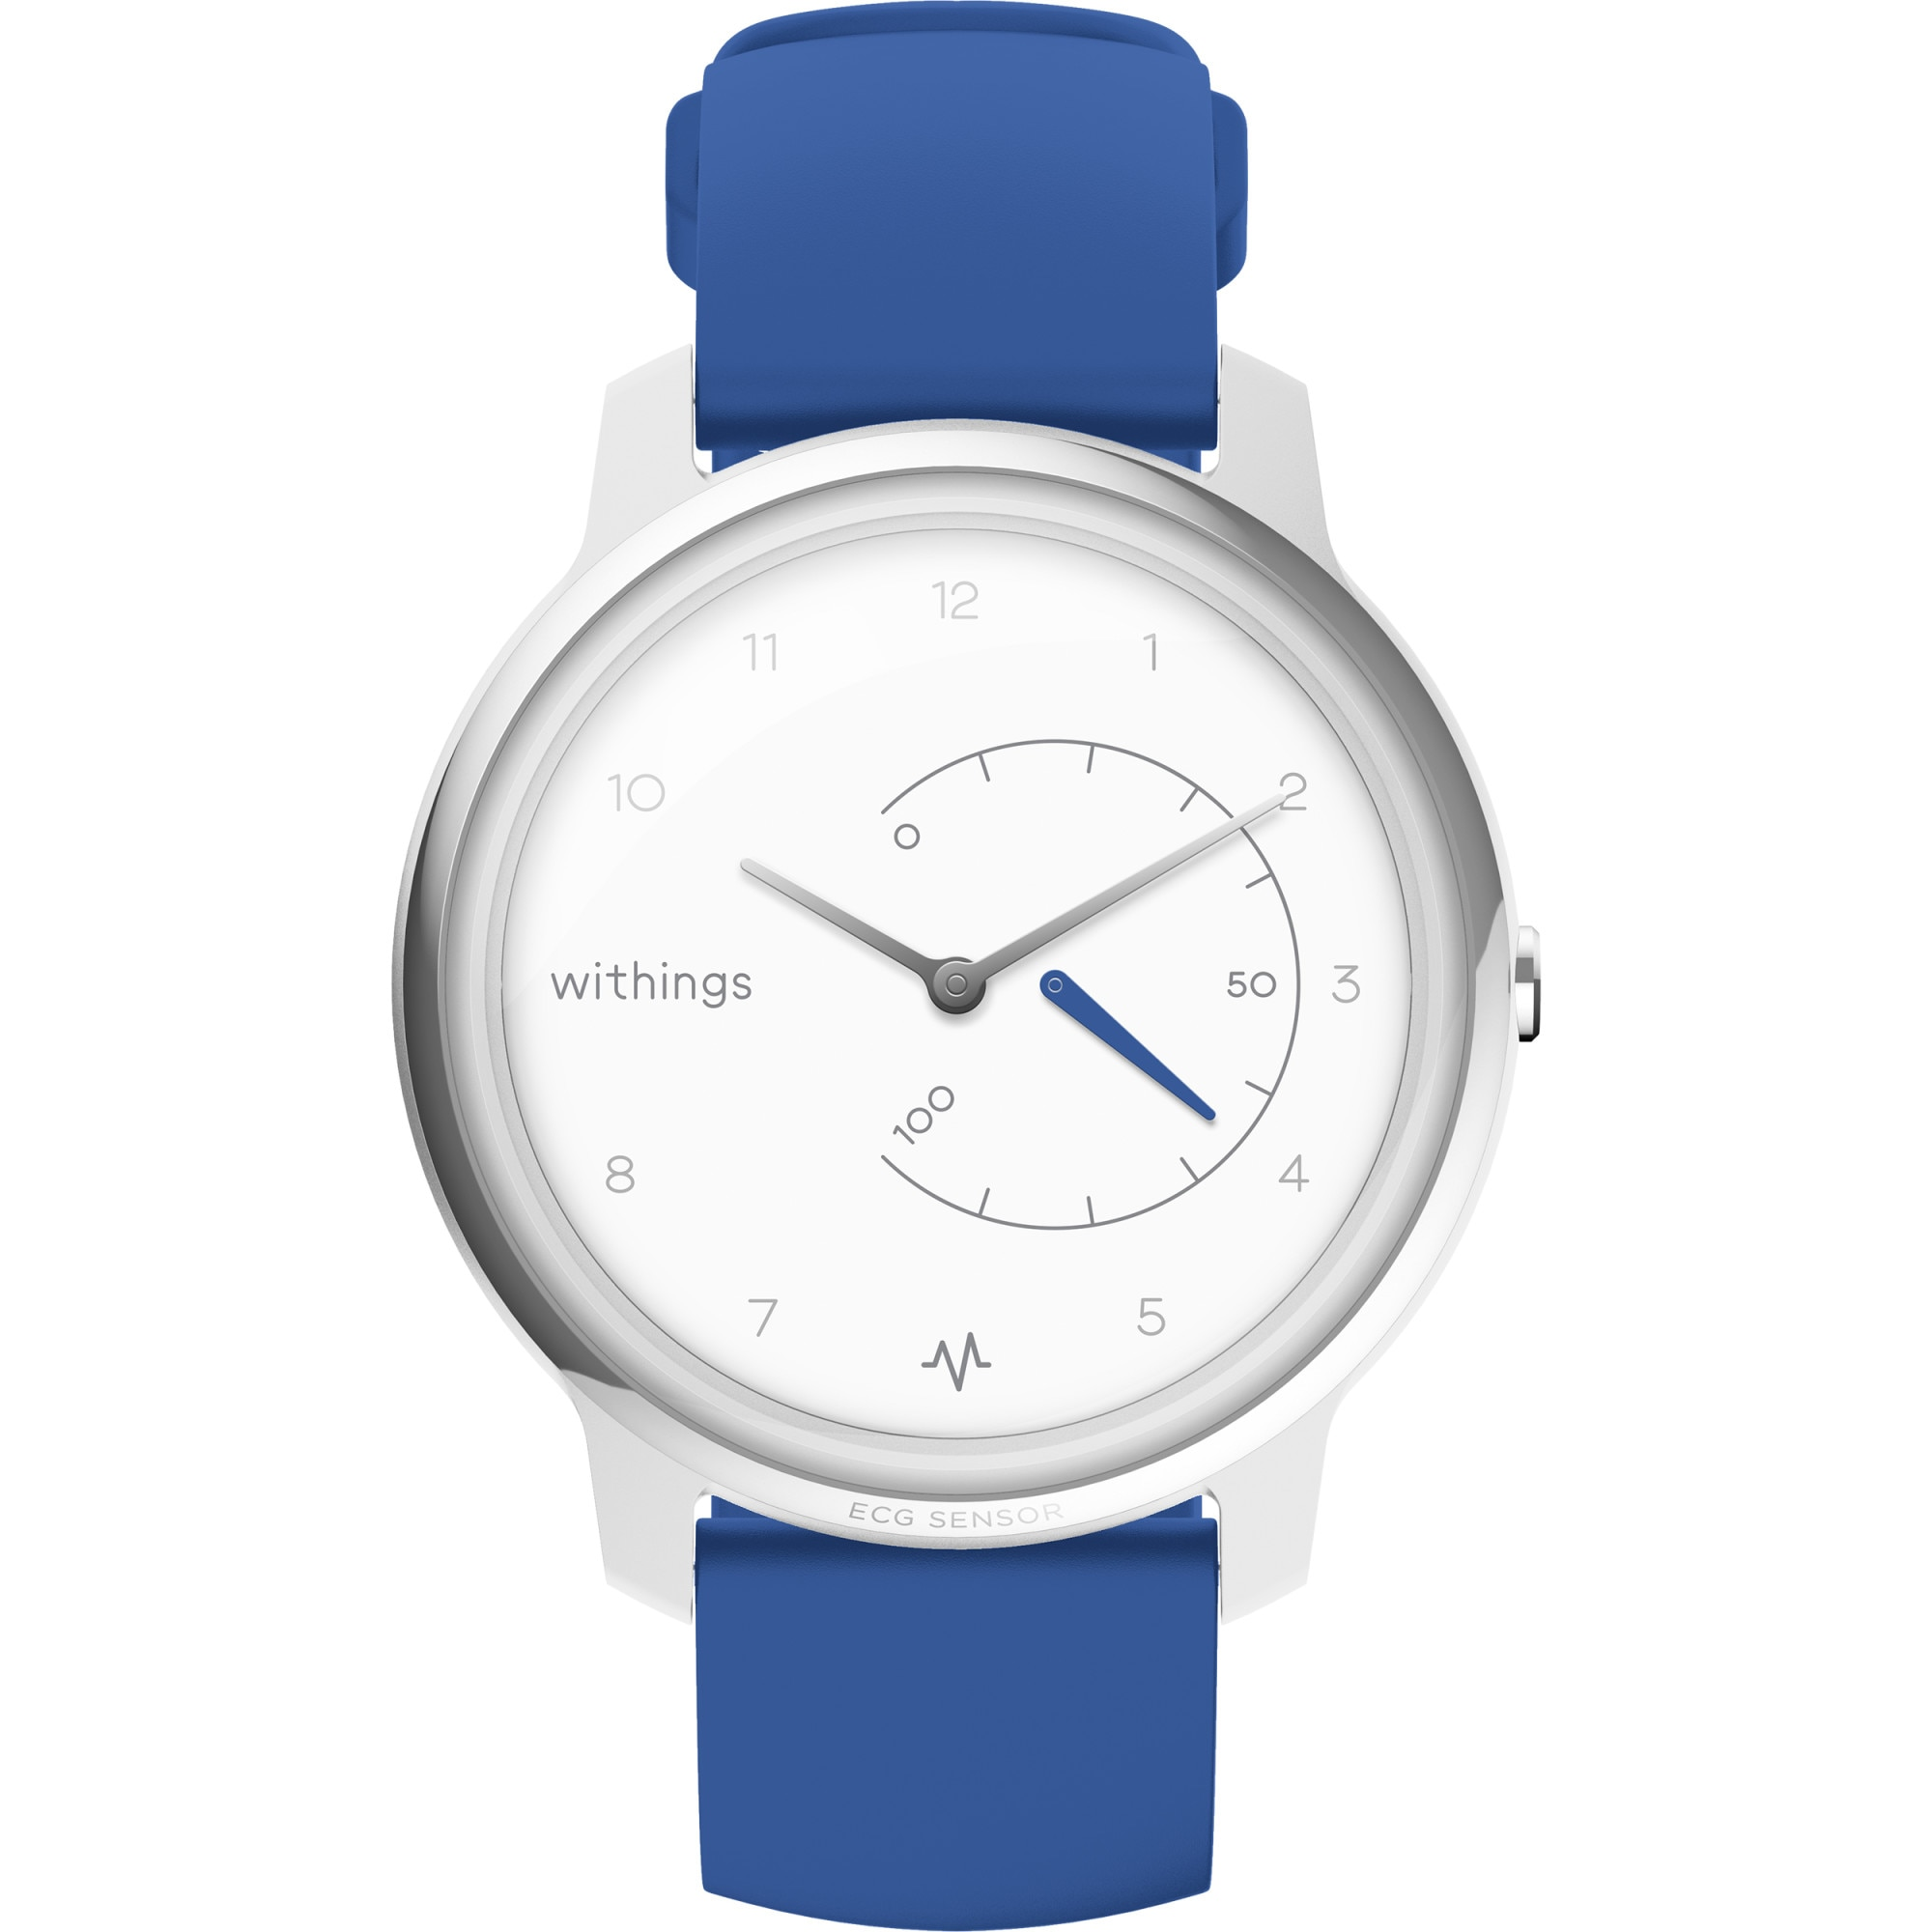 Fotografie Ceas smartwatch Withings Move ECG, Argintiu/Albastru